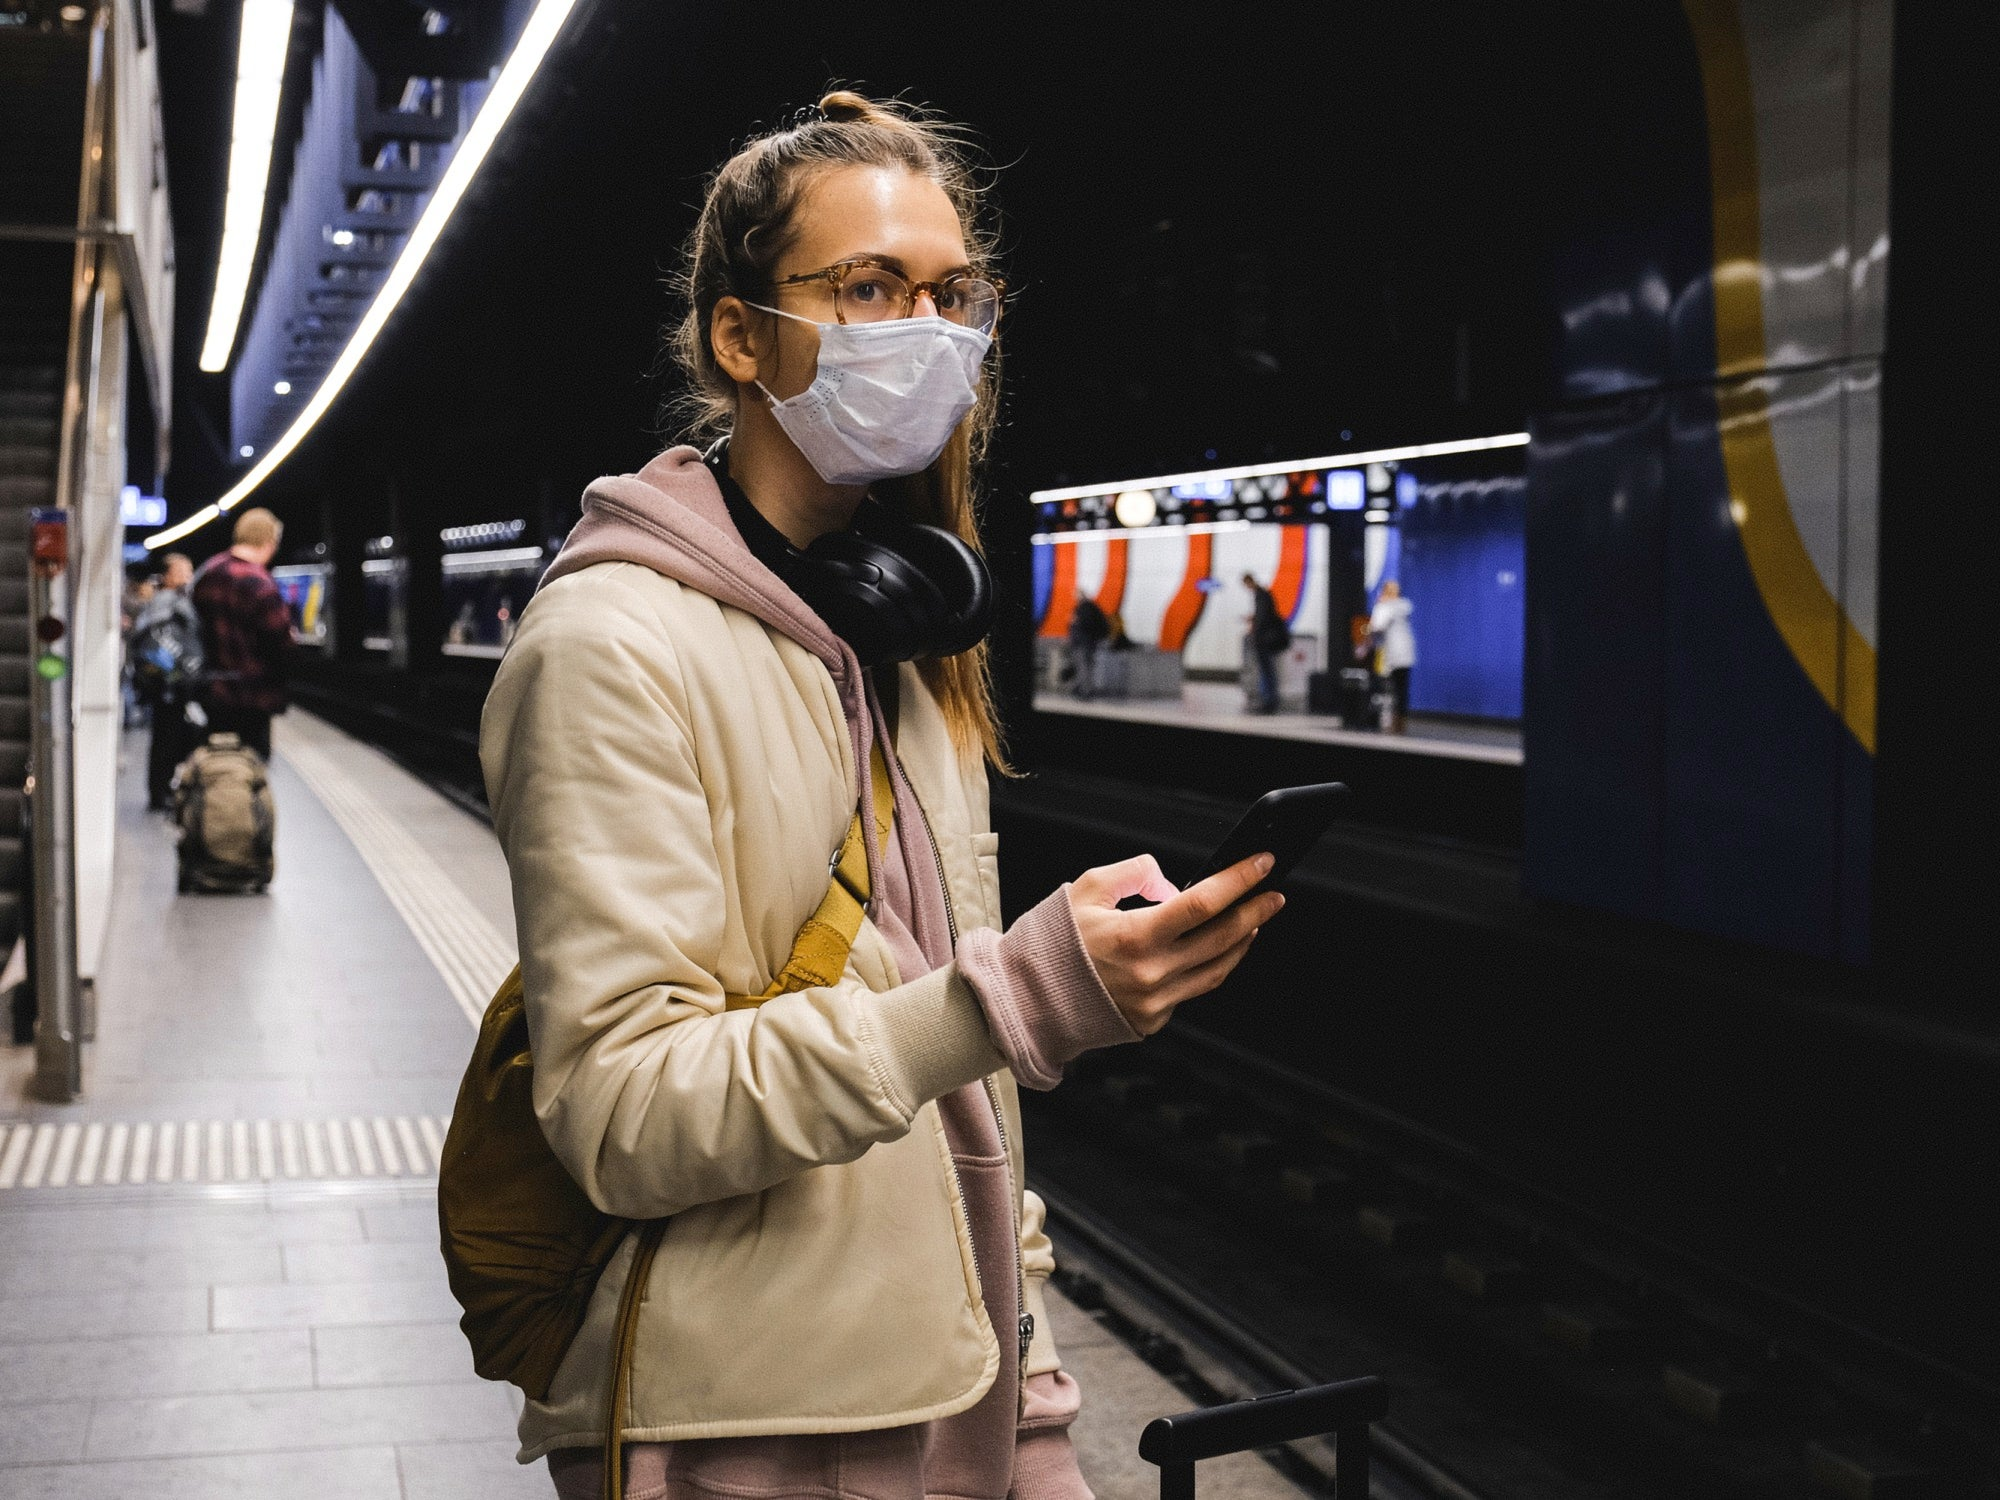 woman wearing mask in subway station